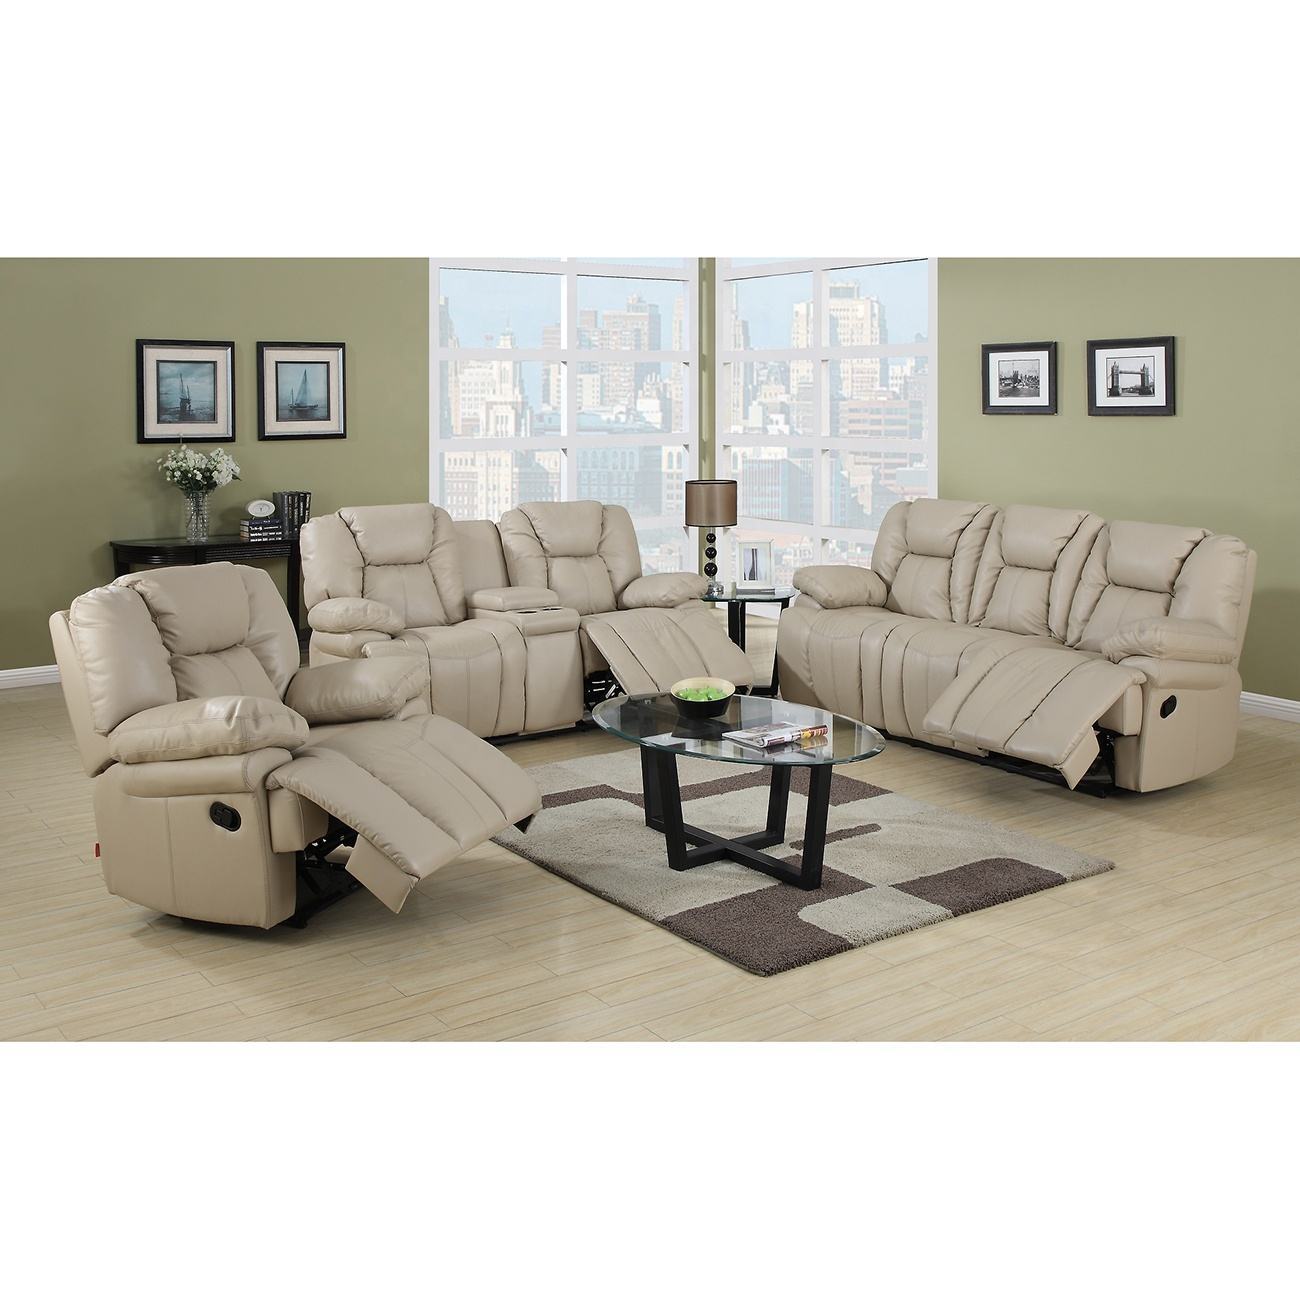 Designed recliner sofa set for living room furniture sofa set 7 seater sectional modern TV recliner chair